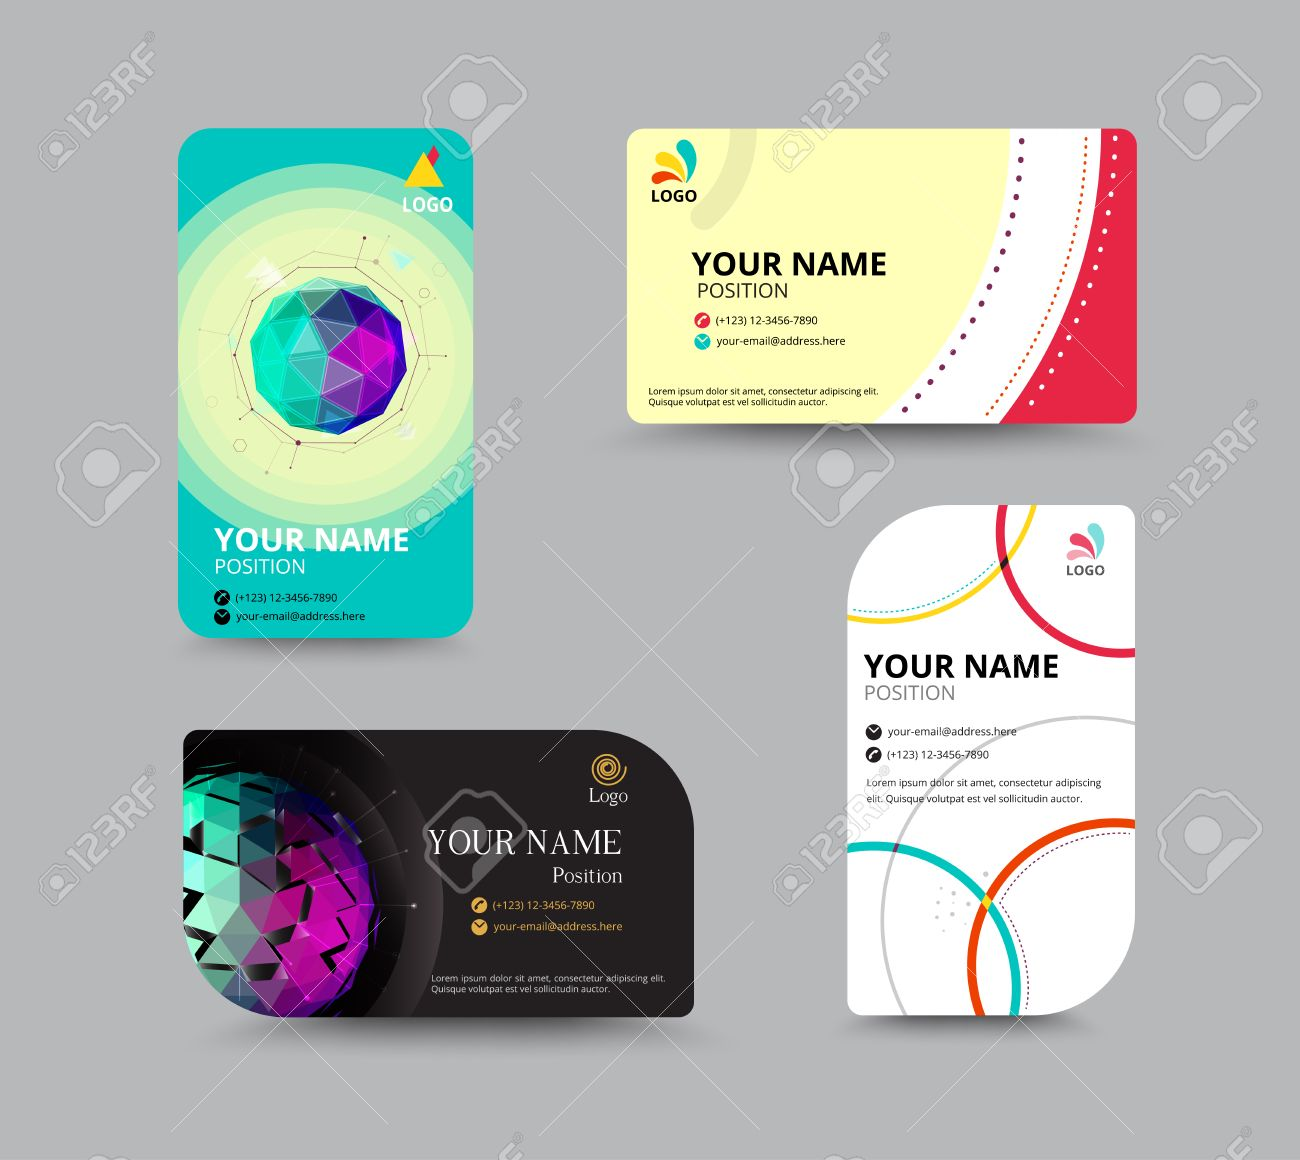 layout for business cards - Gidiye.redformapolitica.co